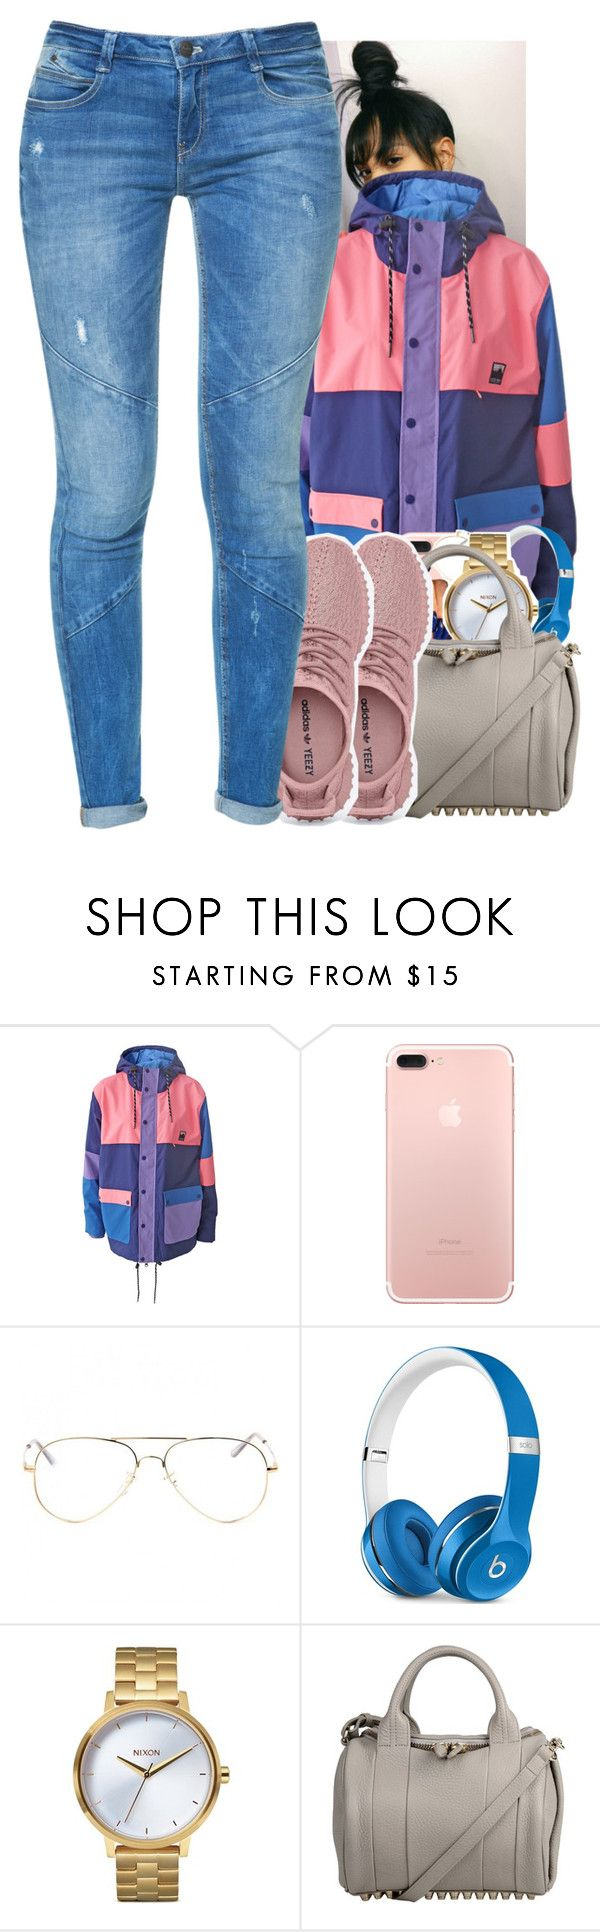 """Untitled #1777"" by toniiiiiiiiiiiiiii ❤ liked on Polyvore featuring Lazy Oaf, Beats by Dr. Dre, Nixon, Alexander Wang and Zara"